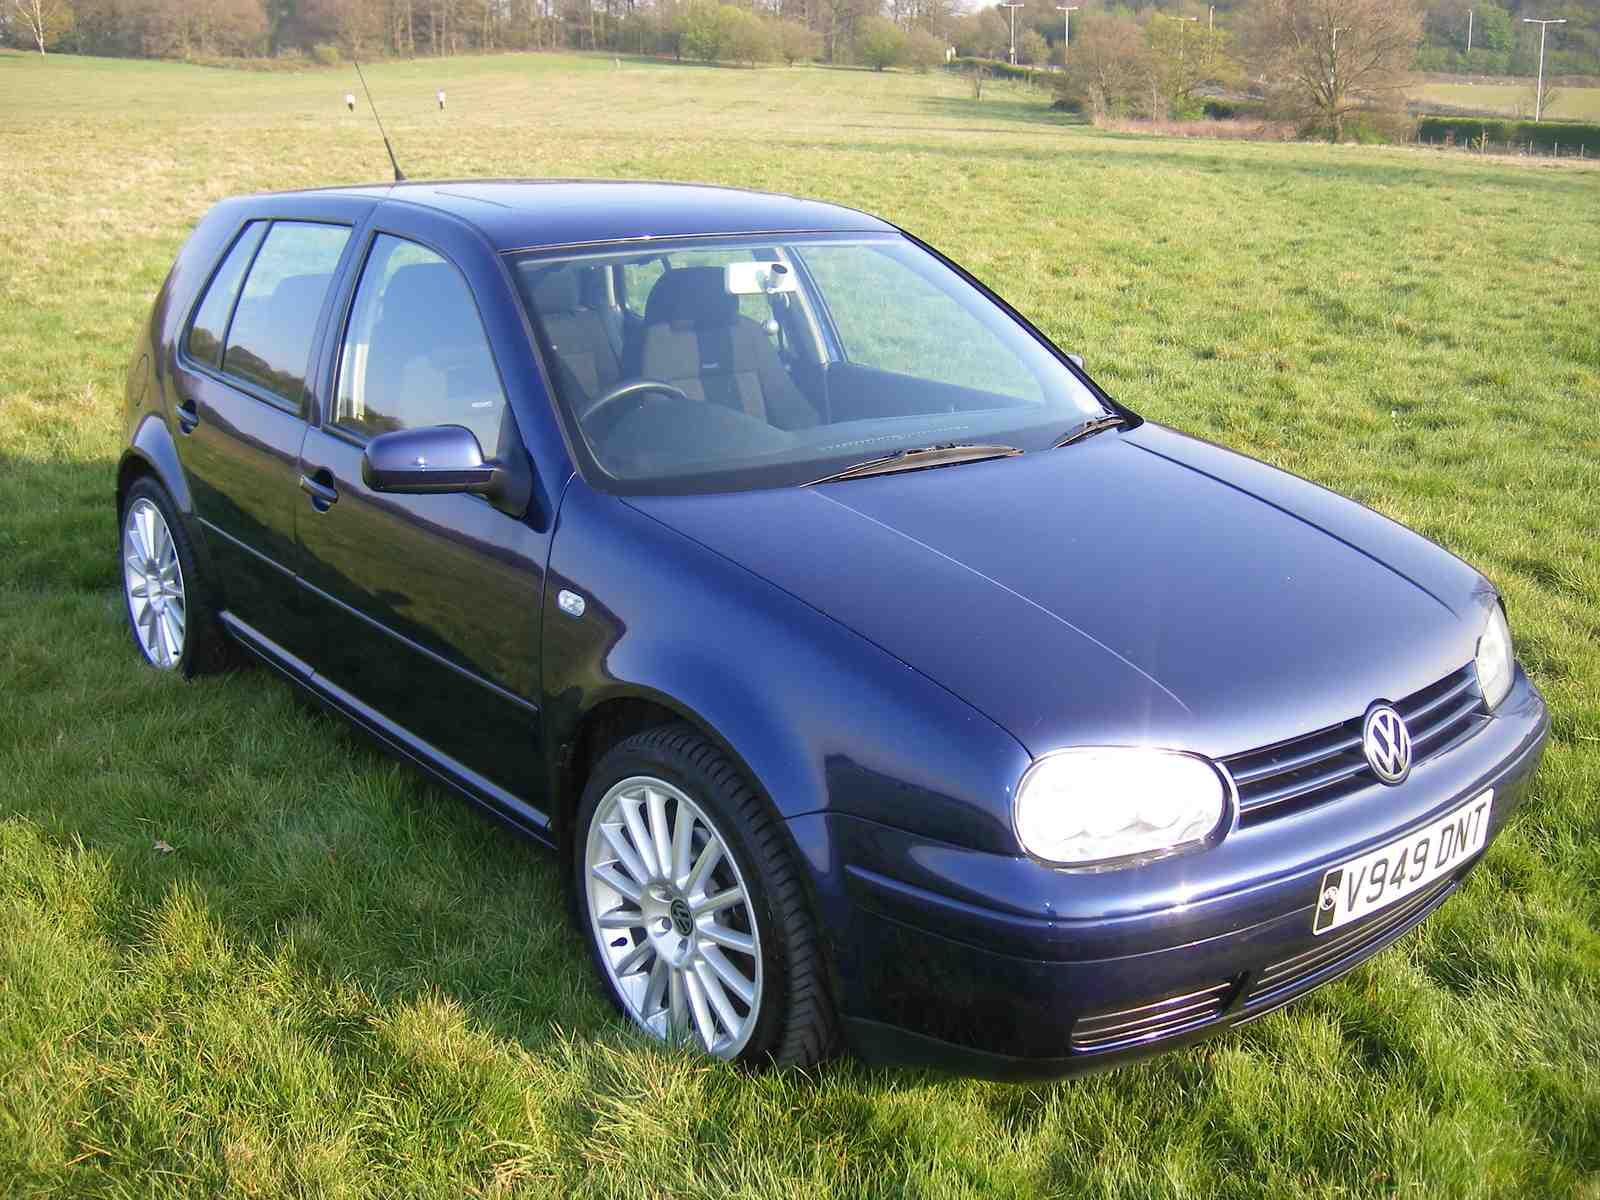 Volkswagen Jetta, Golf, GTI, Cabrio Workshop Service Pepair Manual  1993-1999 (